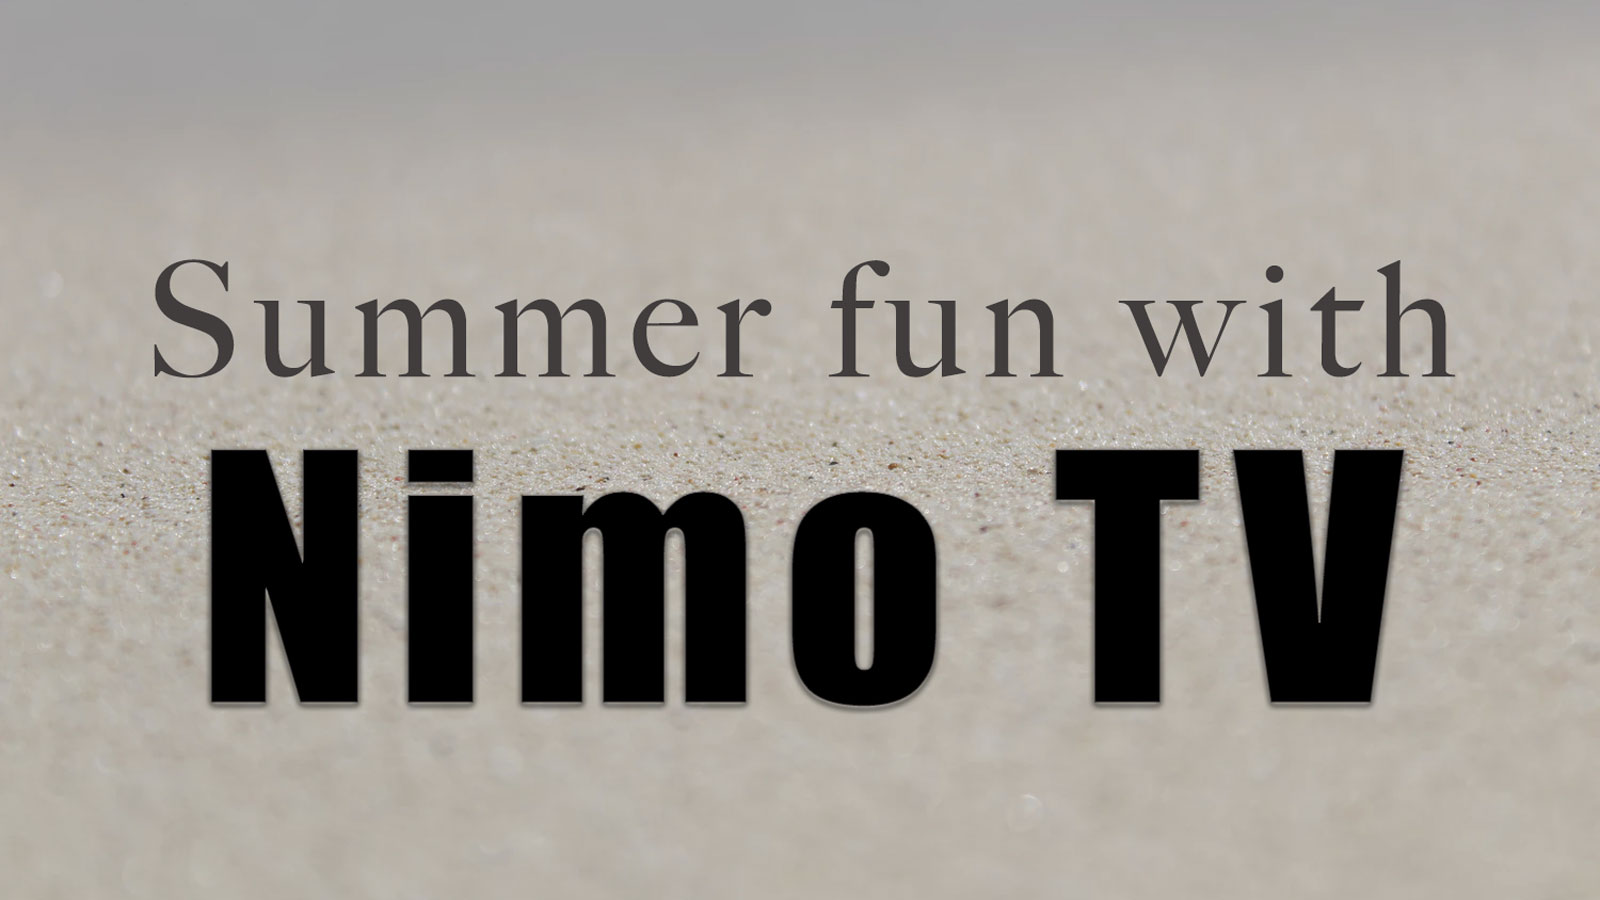 Summer fun with Nimo TV